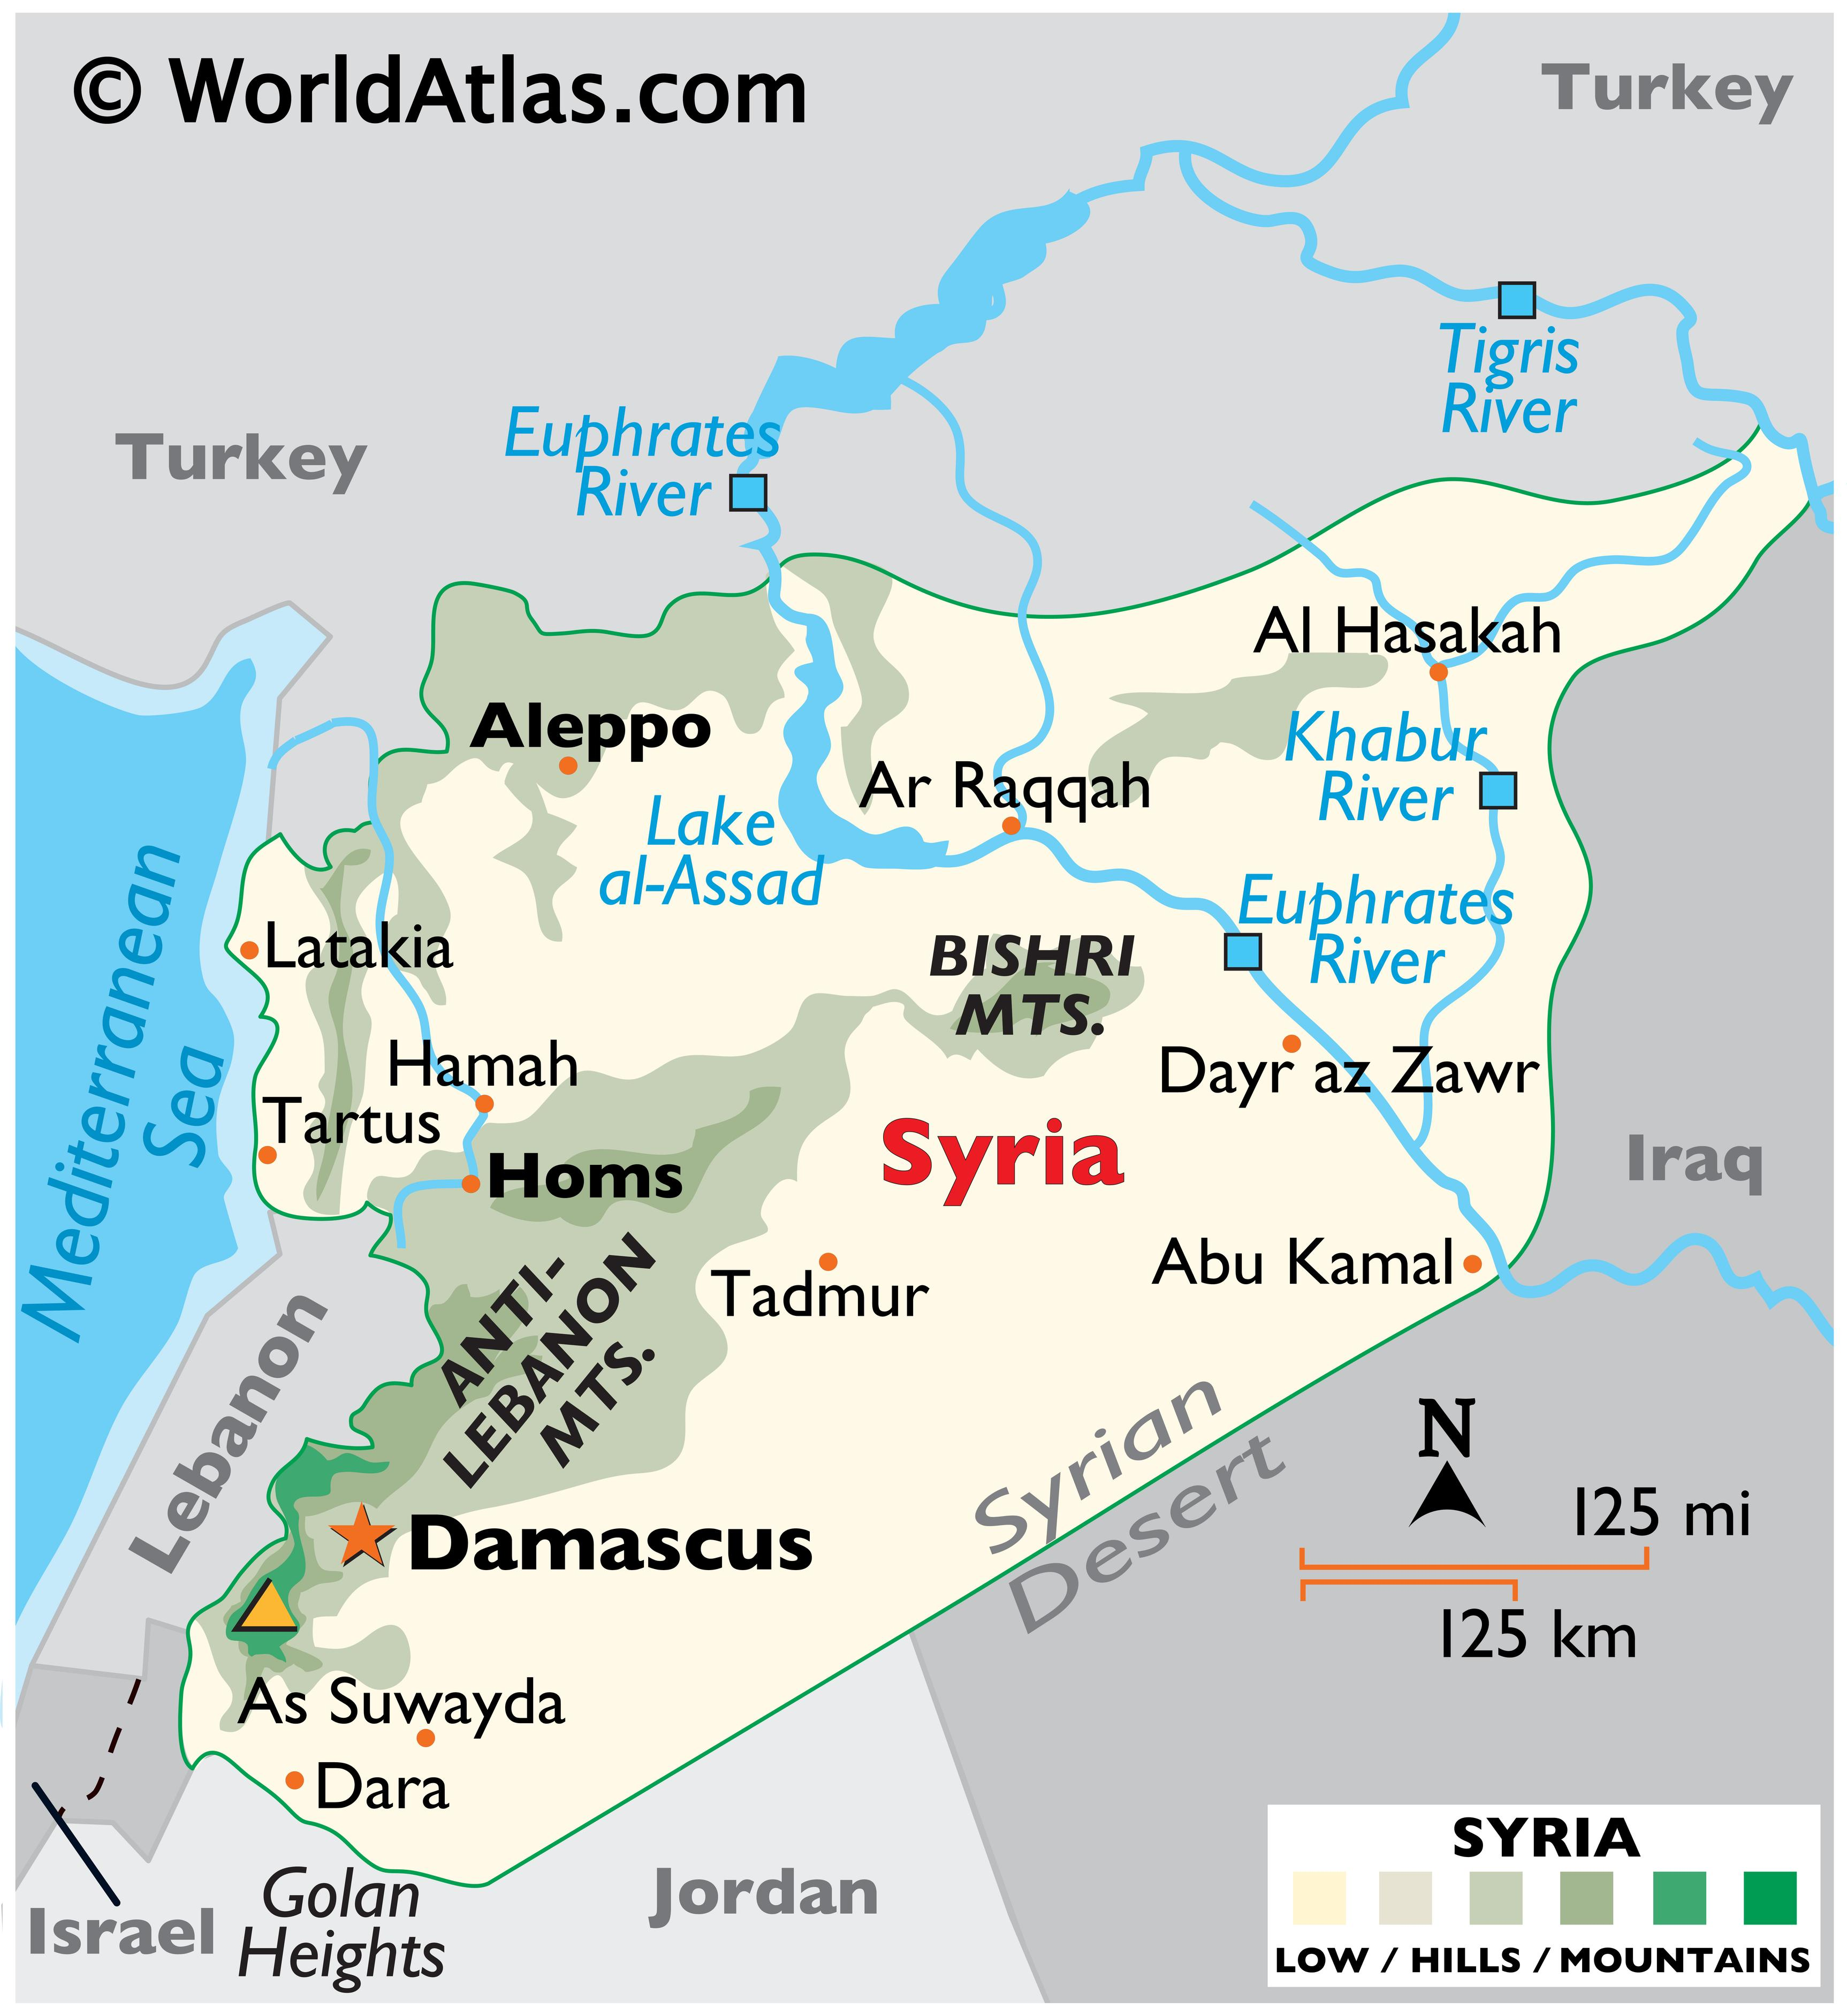 Phyiscal Map of the Syrian Arab Republic with state boundaries, relief, major mountain ranges, rivers, lakes, important cities, and more.